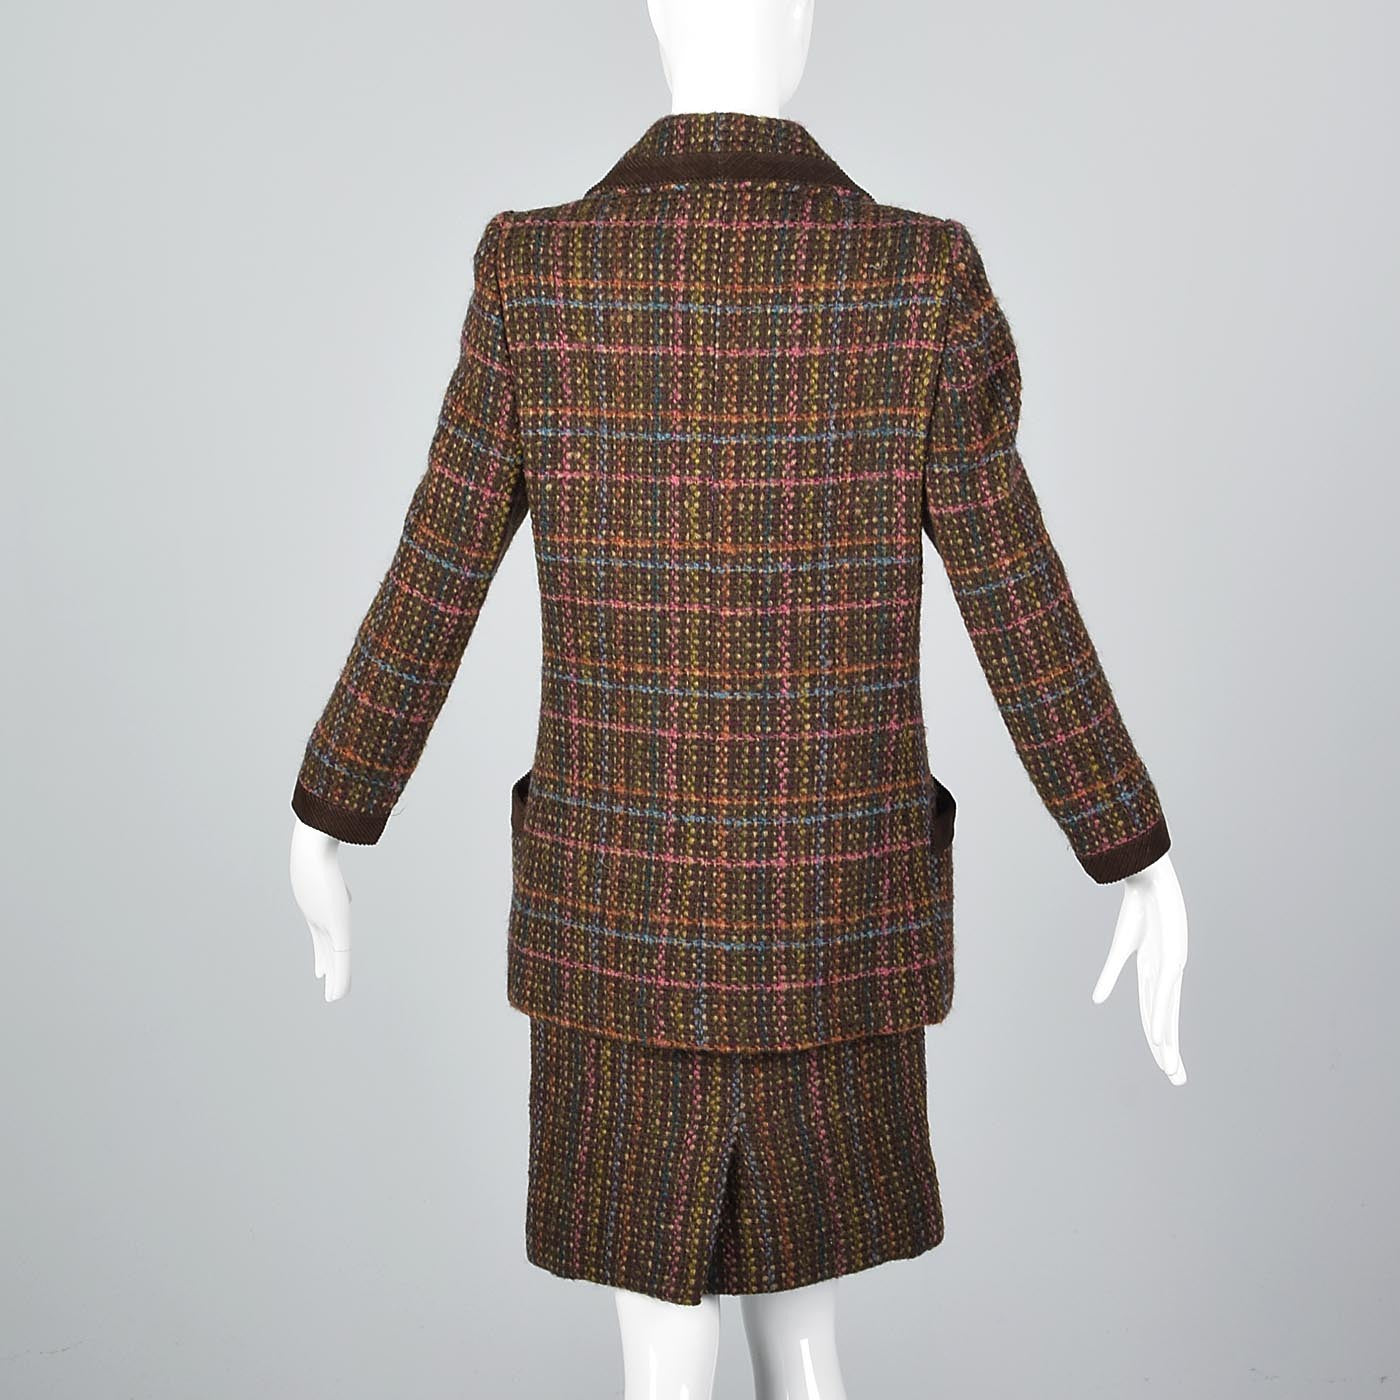 1980s Salvatore Ferragamo Mohair Tweed Skirt Suit with Corduroy Trim